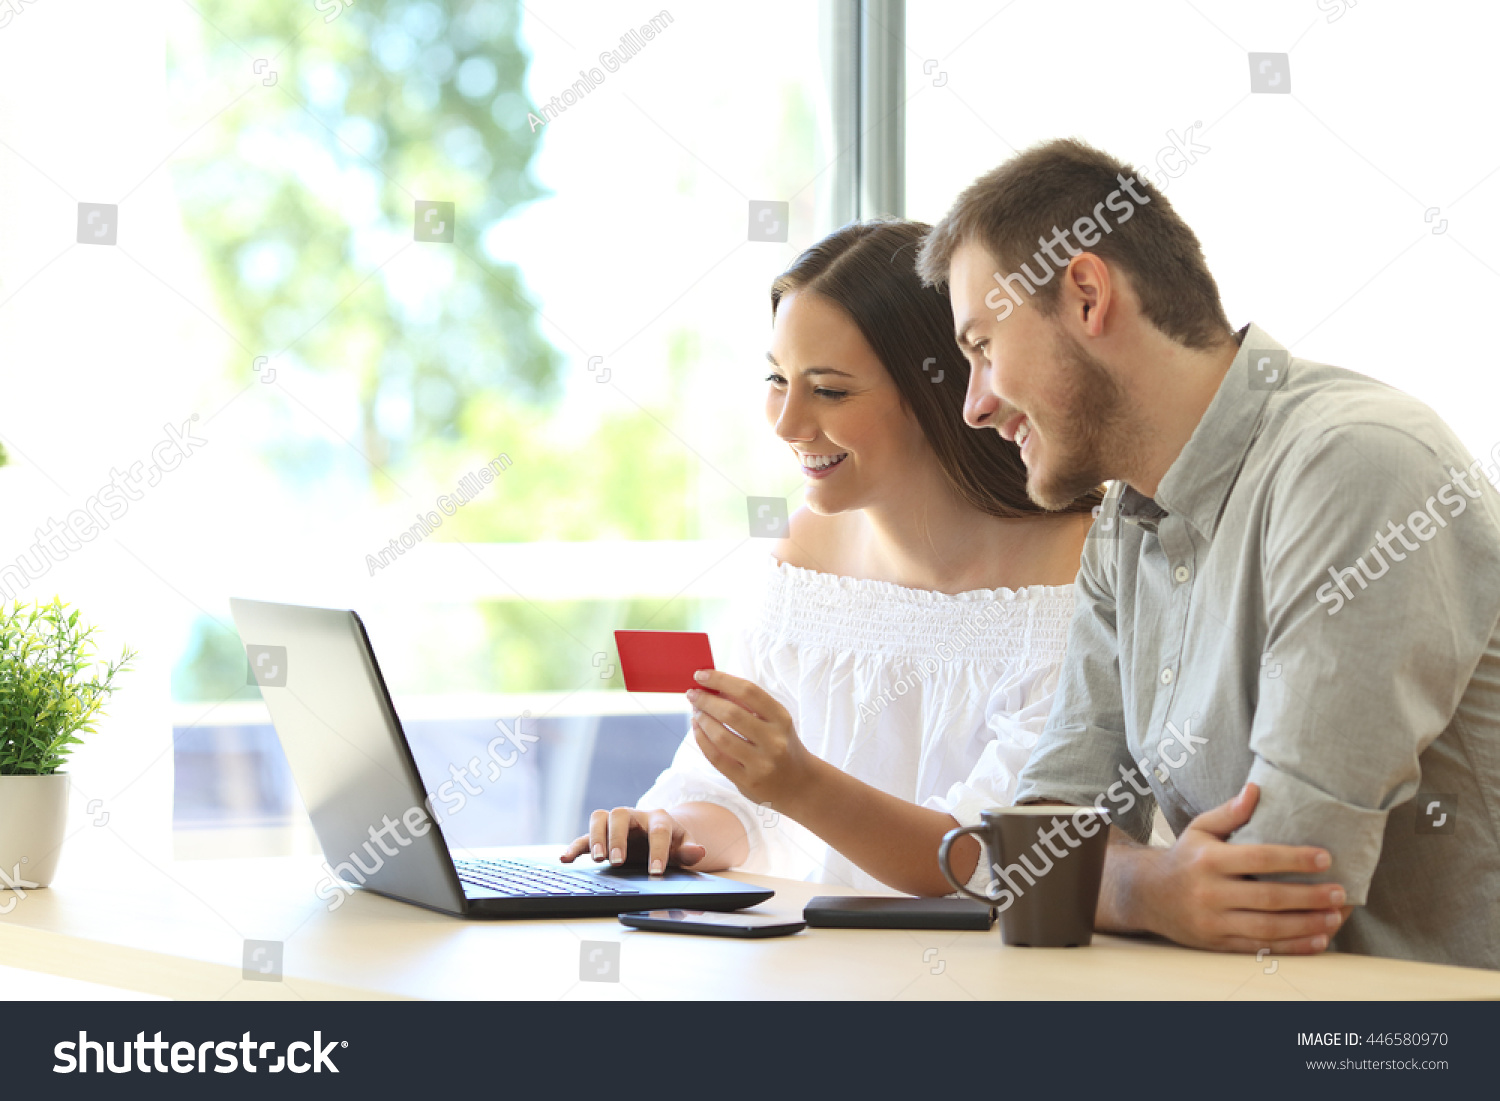 Couple Buyers Buying On Line Credit Stock Photo 446580970. Tennessee Automobile Insurance Plan. Sunrise Assisted Living Abington Pa. Nfl Redzone Att Uverse Finance Seminar Topics. United Airlines Credit Cards 50000. Detox For Alcohol Addictions. List Of Digital Marketing Agencies. Iis Web Log Analyzer Free Patient Call Center. Good Computer Engineering Schools